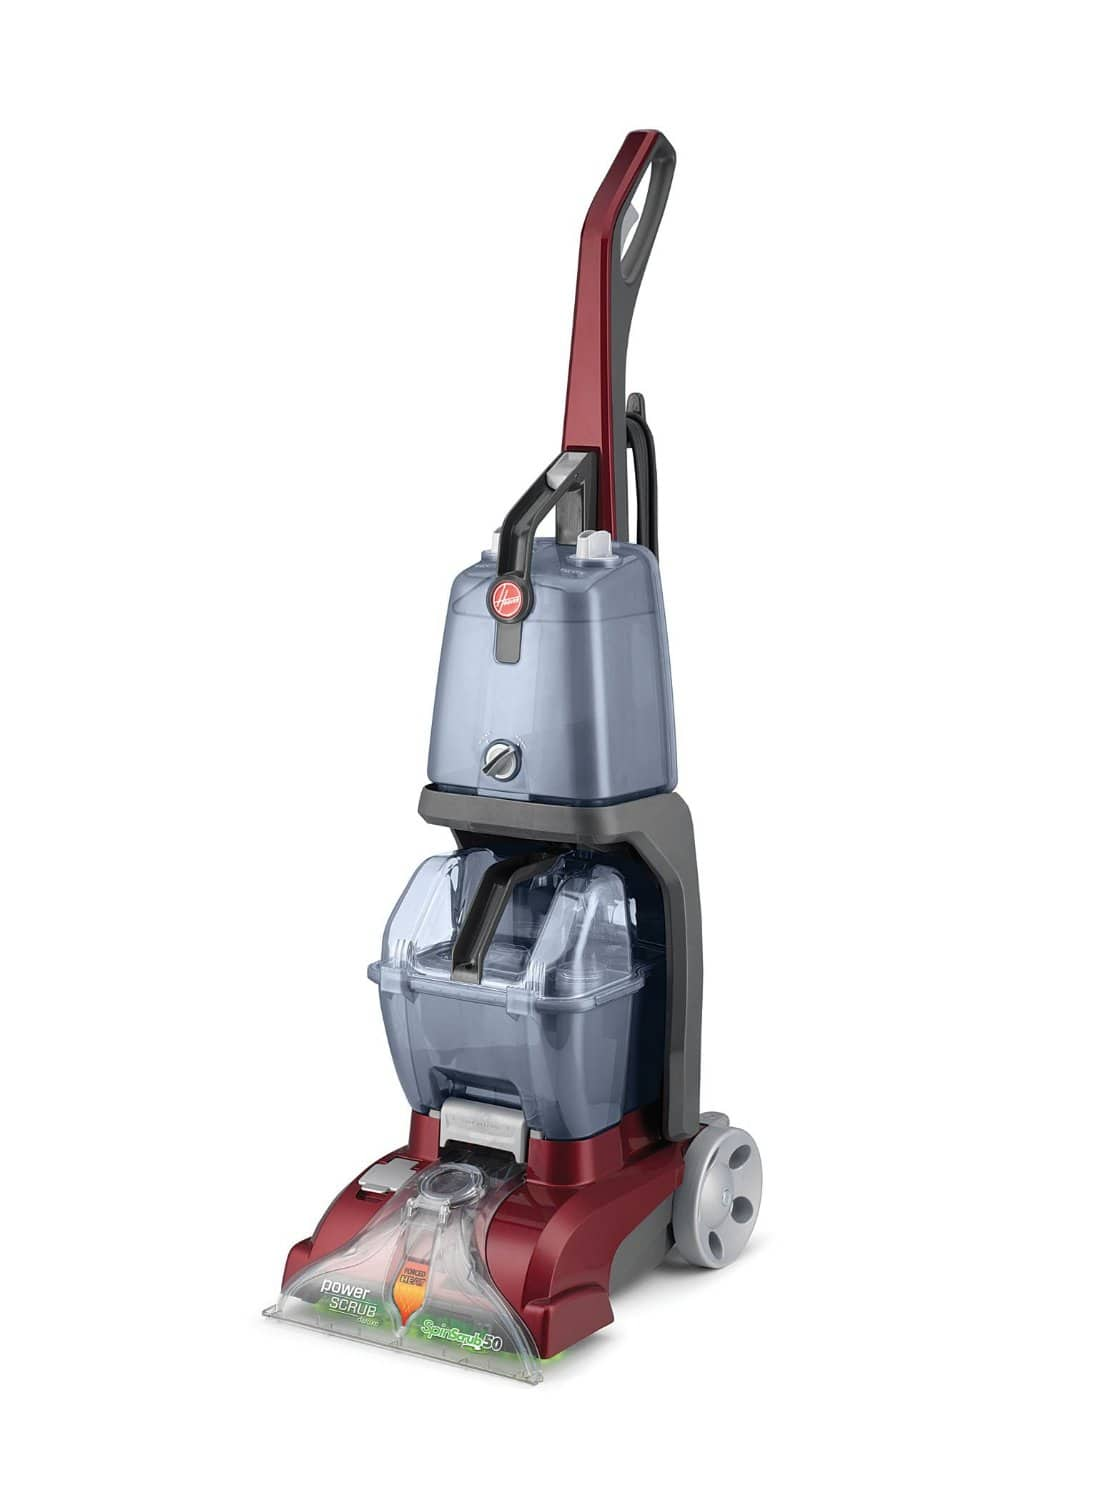 Hoover Power Scrub Deluxe Carpet Washer FH50150 [Power Scrub Deluxe] $118.99